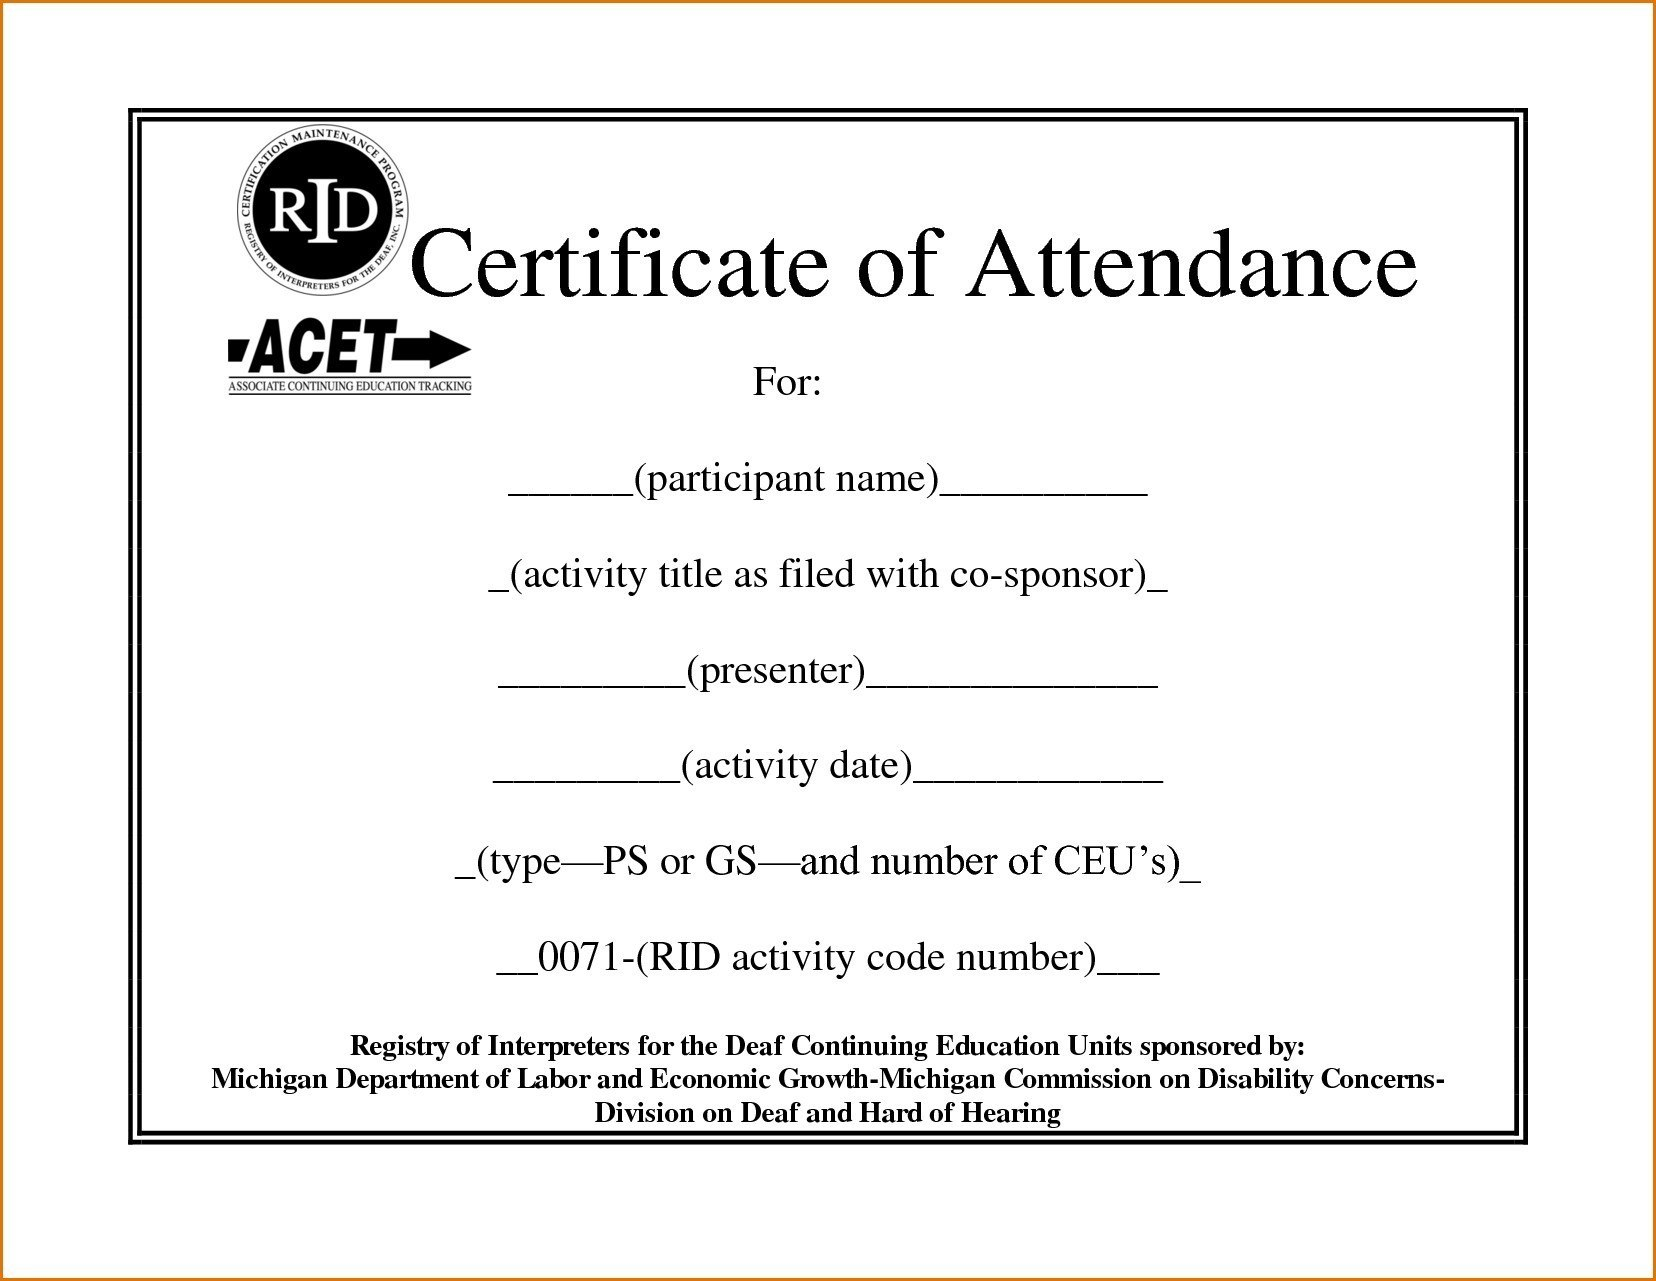 Sample Certificate Of Attendance Template  Sansurabionetassociats Within Conference Certificate Of Attendance Template